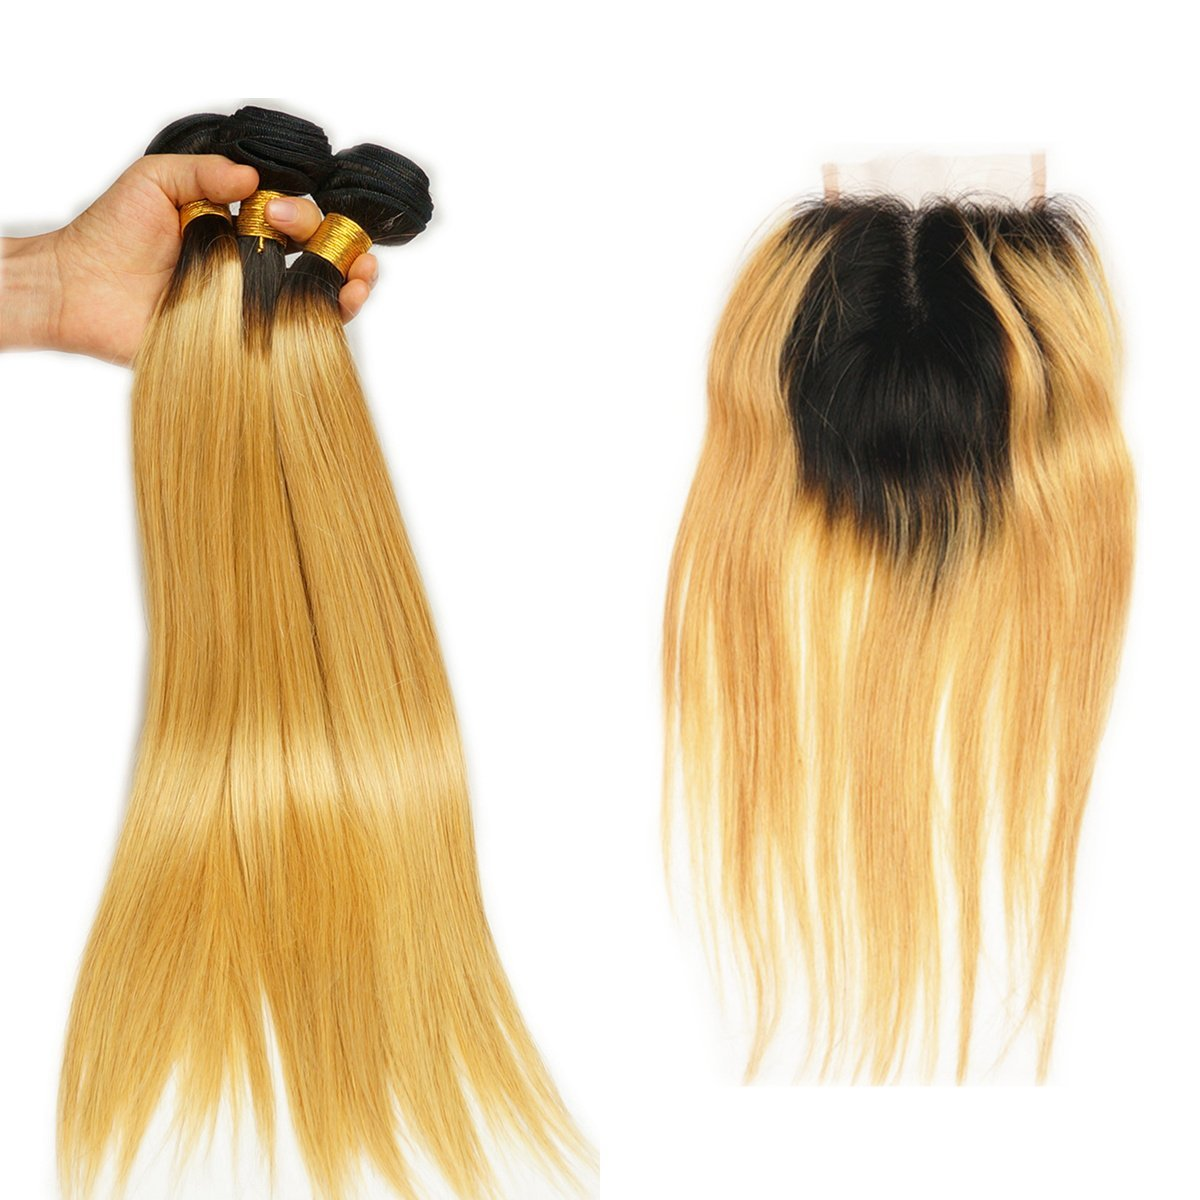 Cheap Pictures Sew Weaves Find Pictures Sew Weaves Deals On Line At